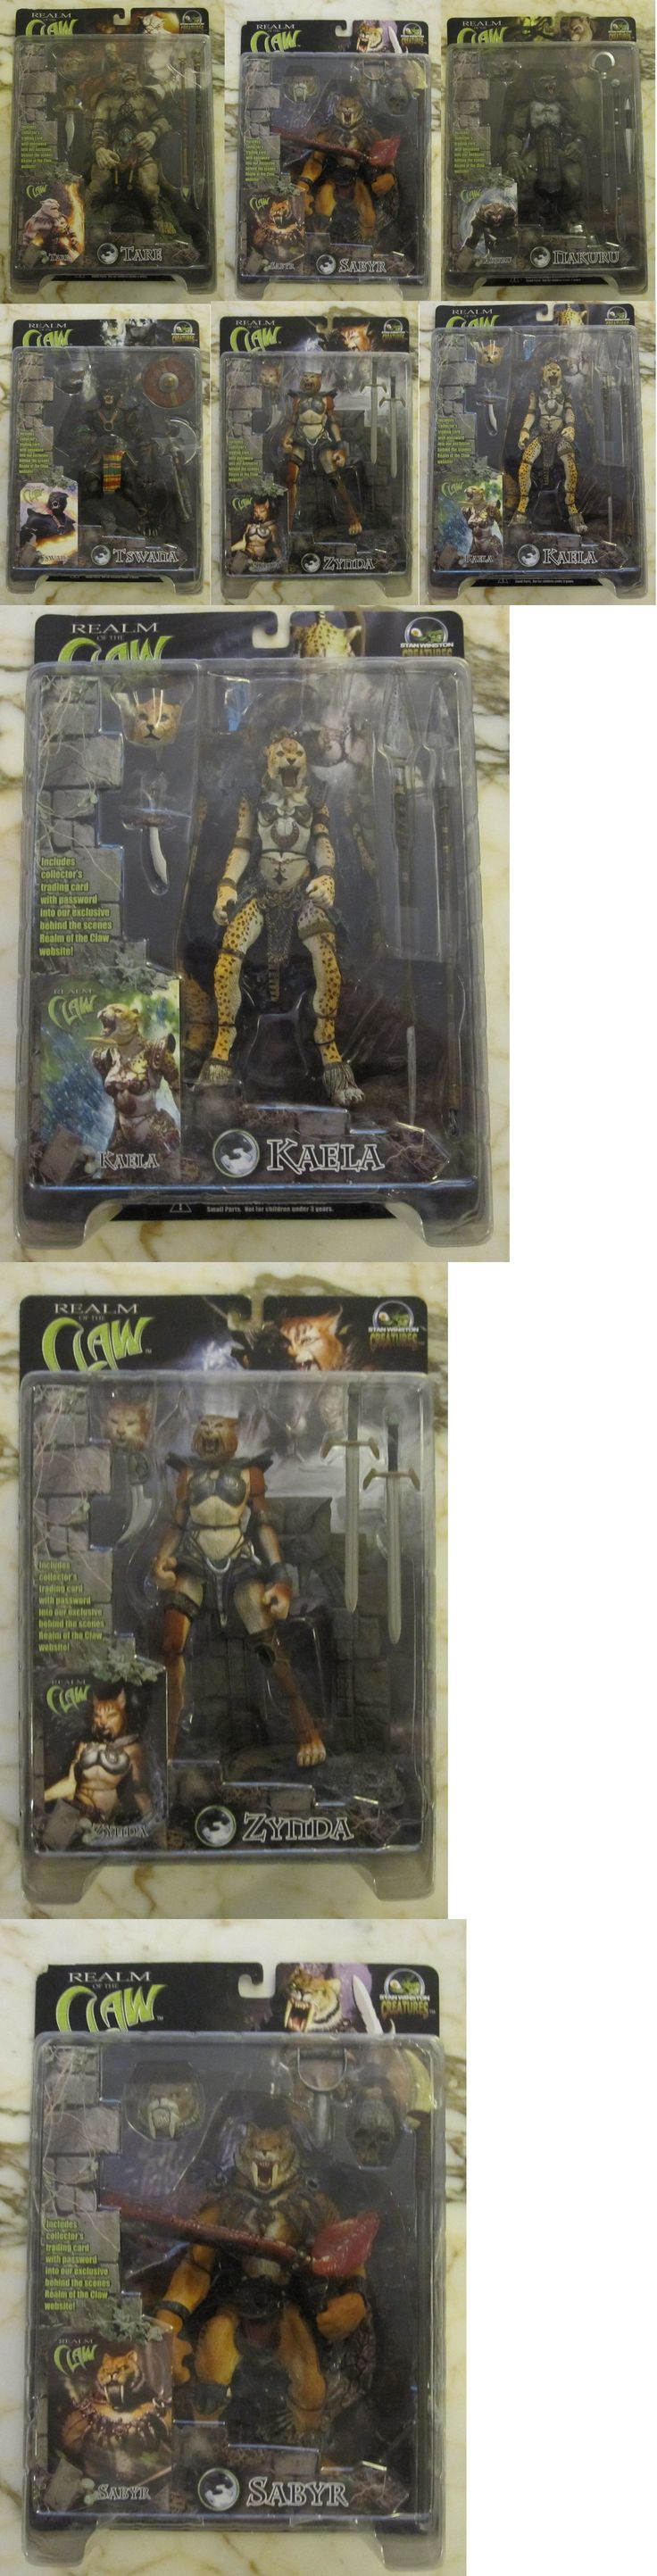 Fantasy 175693: Stan Winston - Realm Of The Claw Complete Set Mip Htf (6)(Spawn, Marvel, Dc) -> BUY IT NOW ONLY: $150 on eBay!